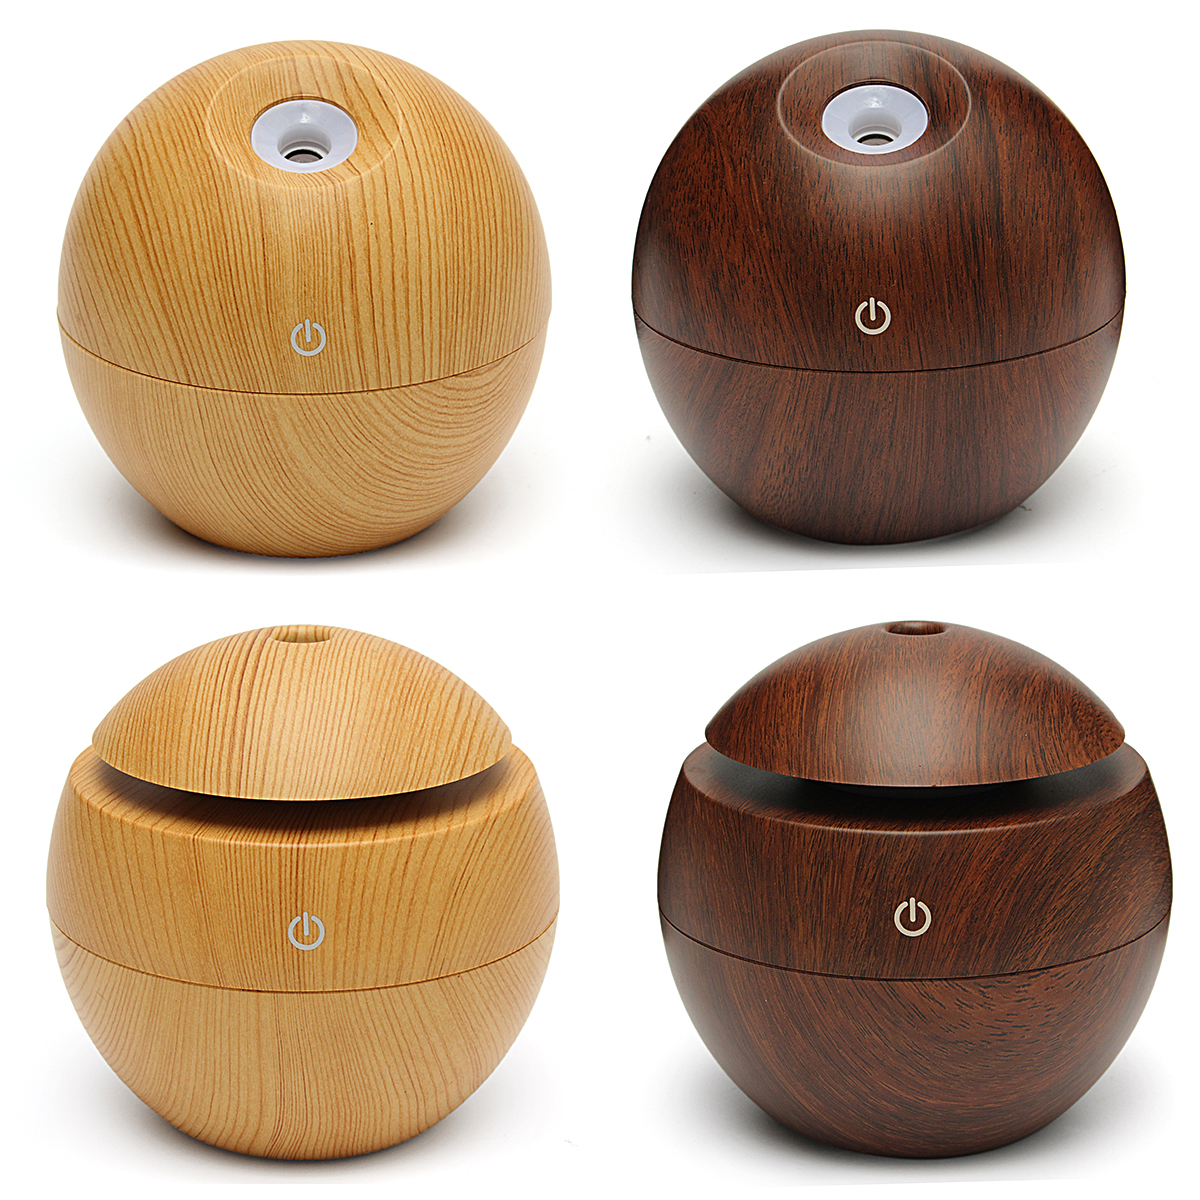 Meigar Wooden Aroma Diffuser Humidifier,Essential Oil Diffuser Air Purifier Portable Grain 130ml Touch Sensitive for Home, Office, Baby Room, Bedroom